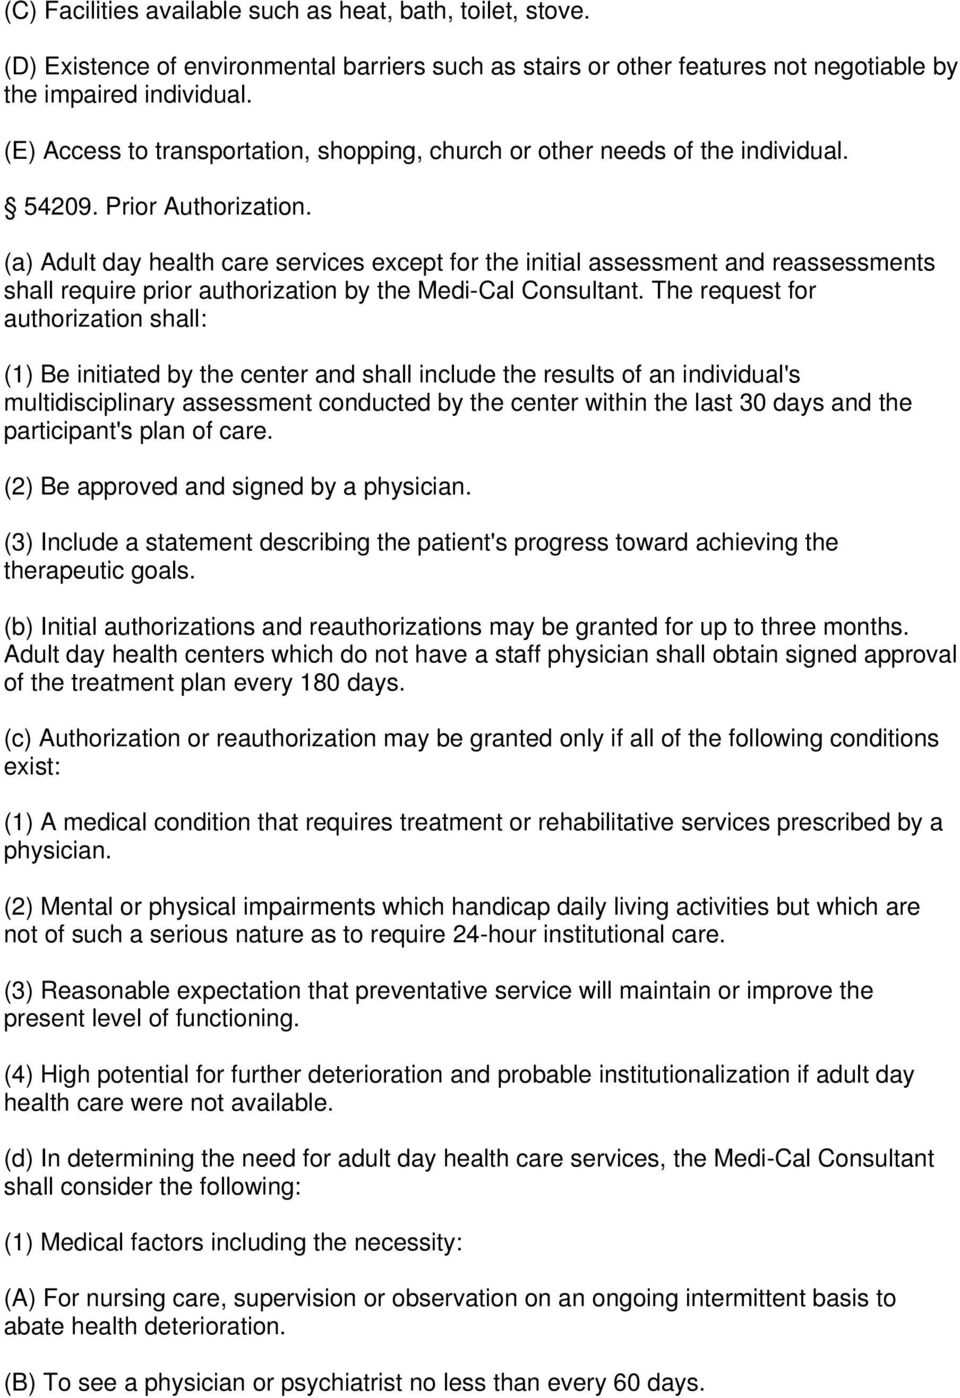 (a) Adult day health care services except for the initial assessment and reassessments shall require prior authorization by the Medi-Cal Consultant.